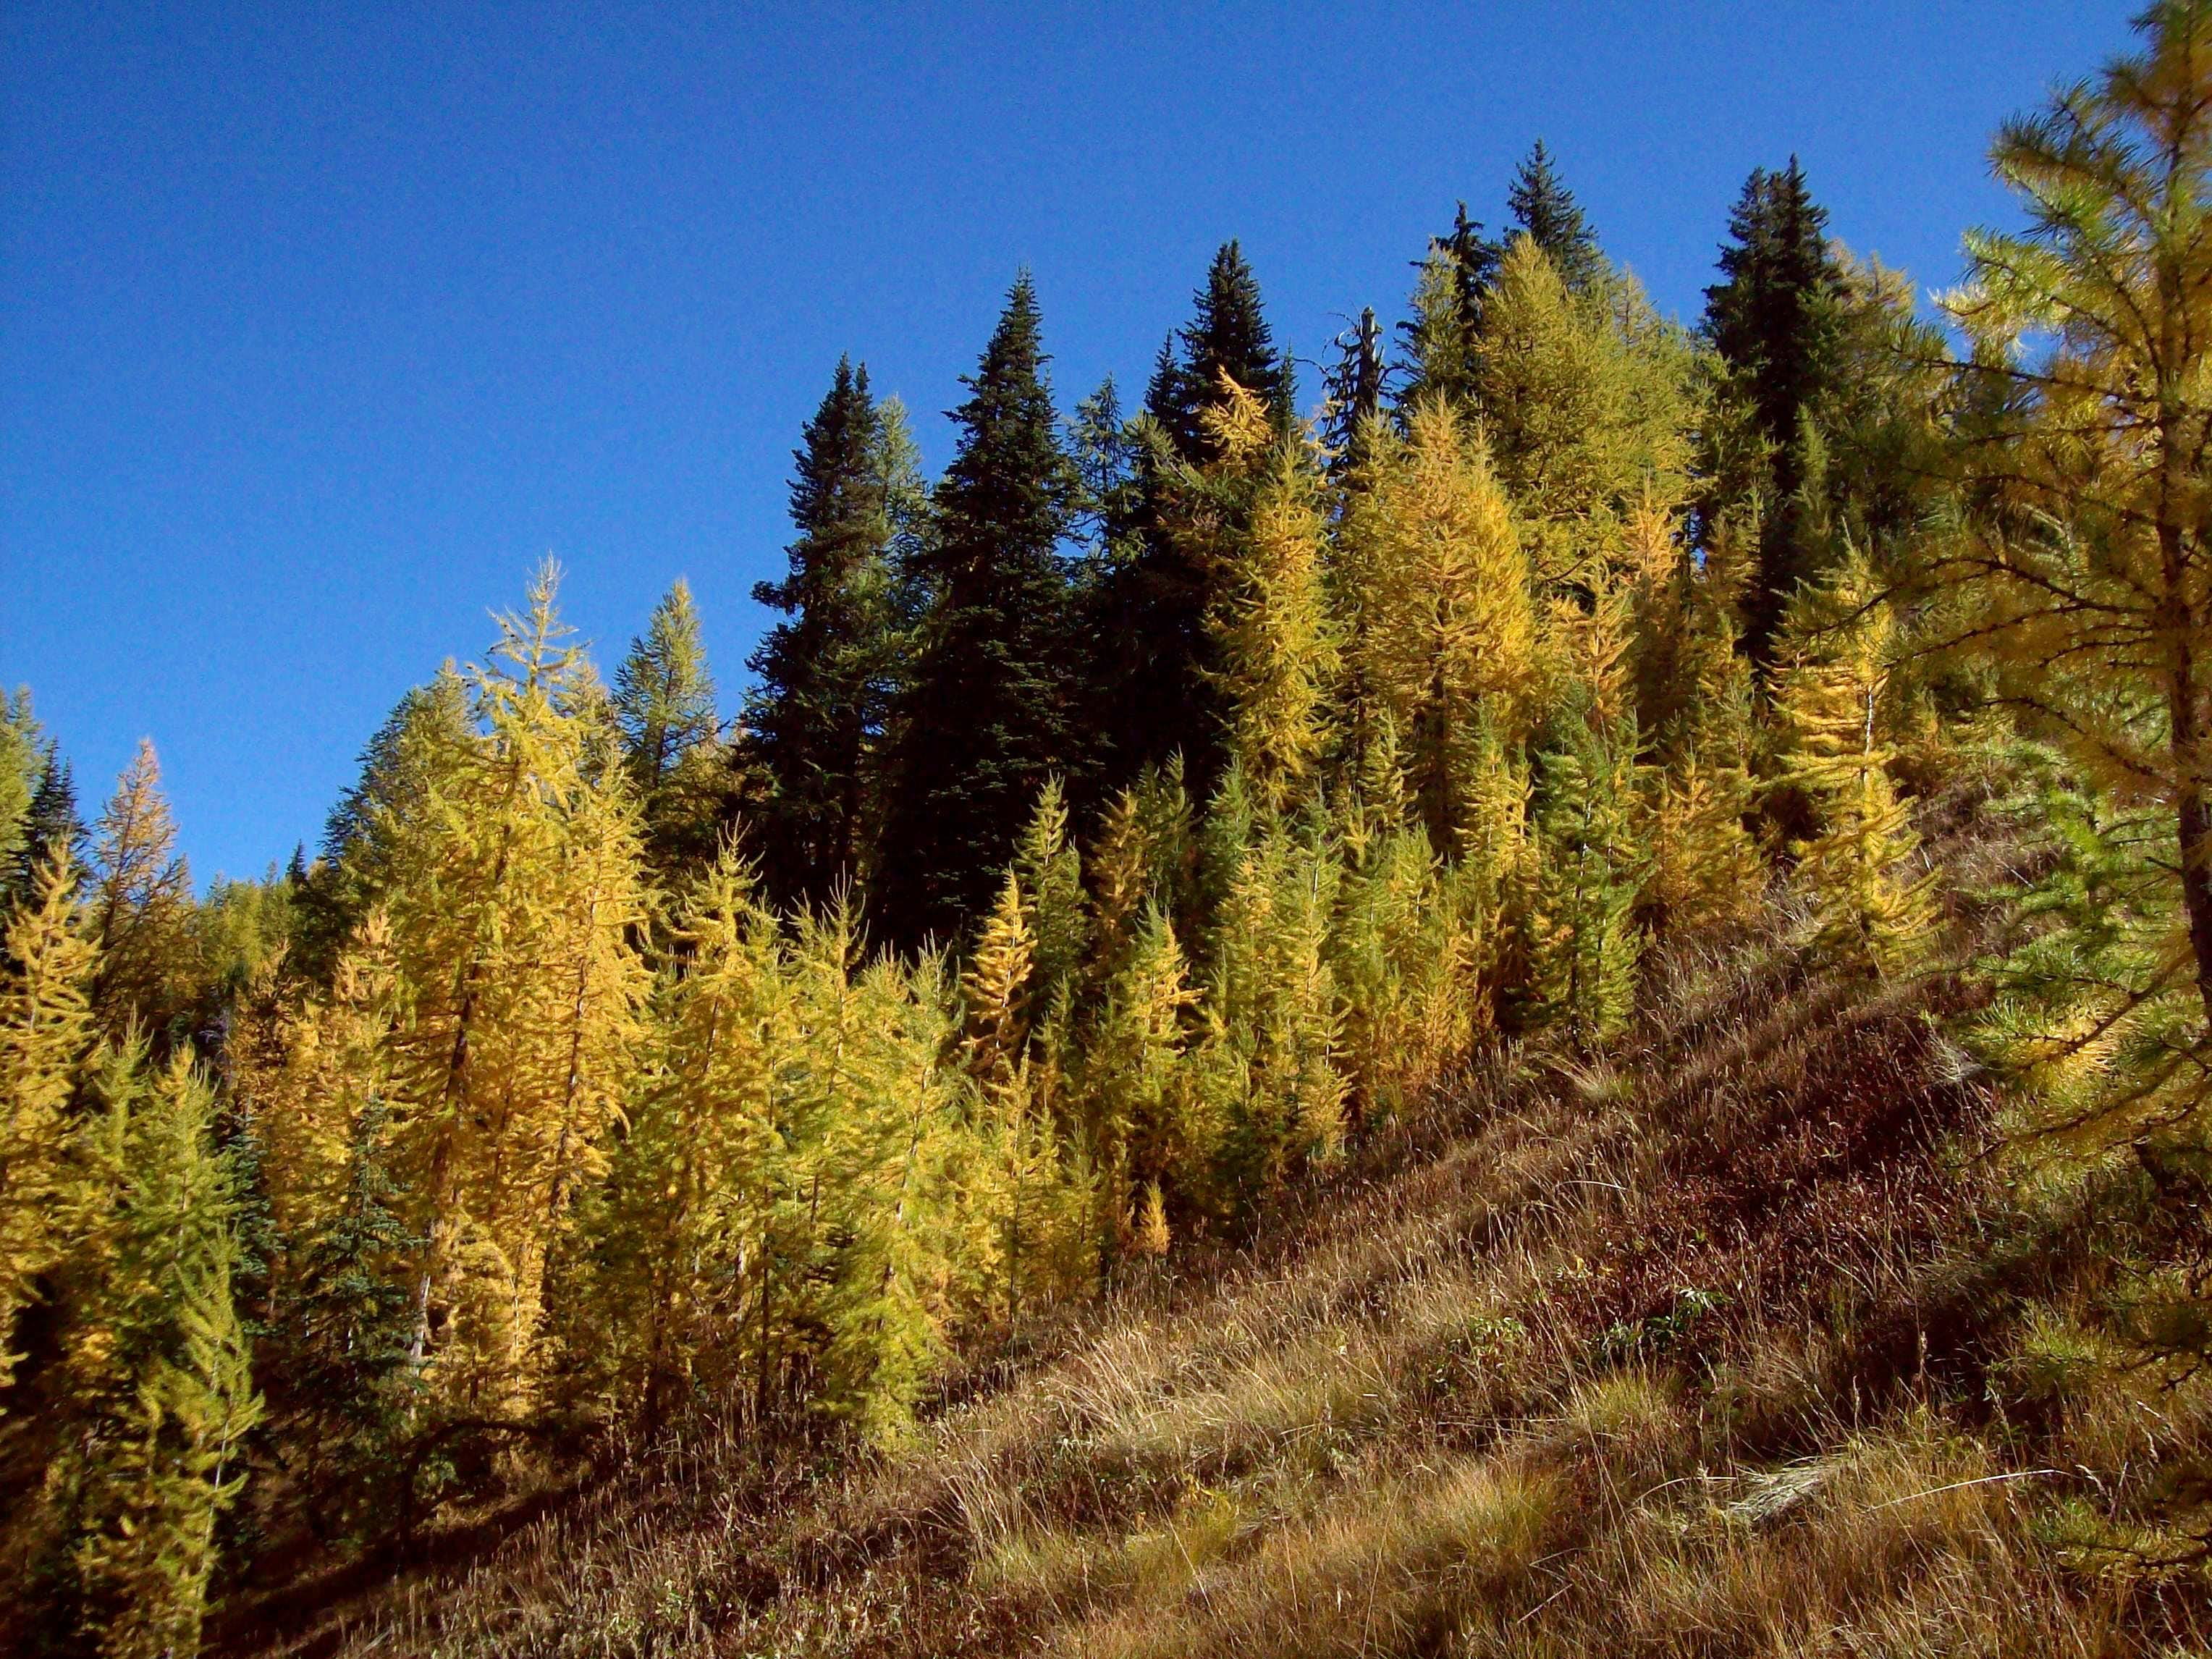 Fall Colors in Washington State 2009